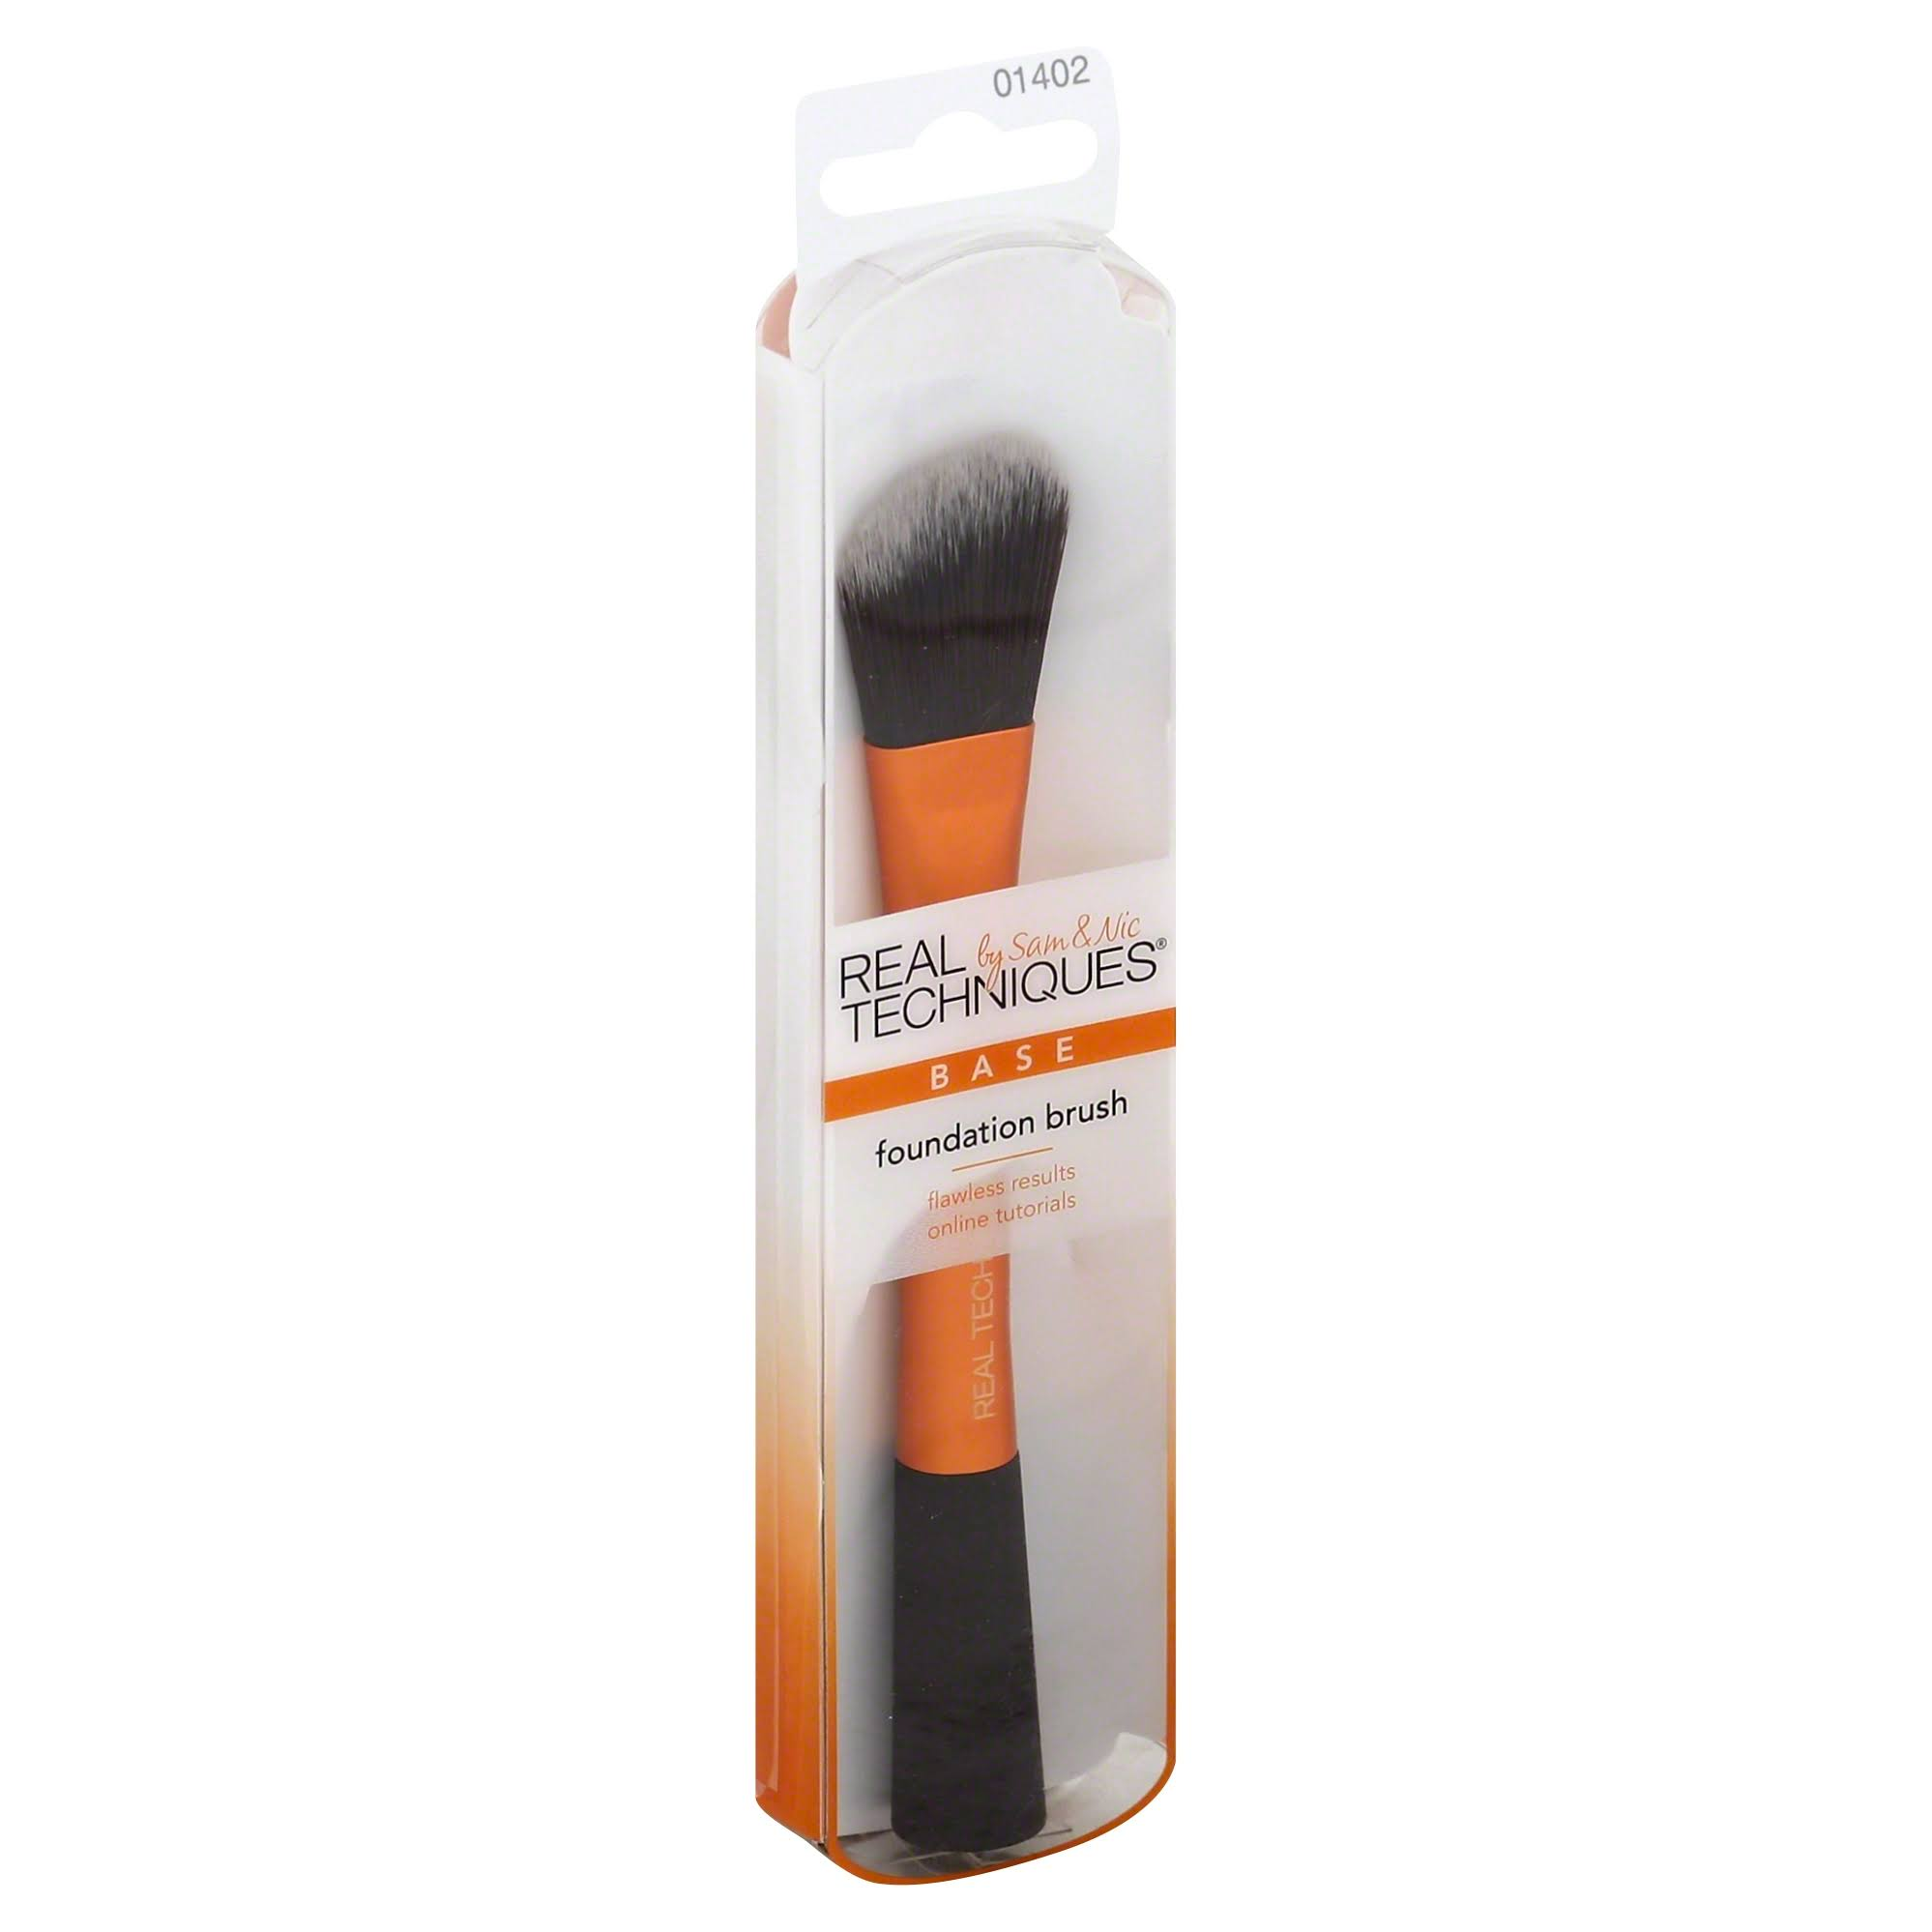 Real Techniques Base Foundation Brush